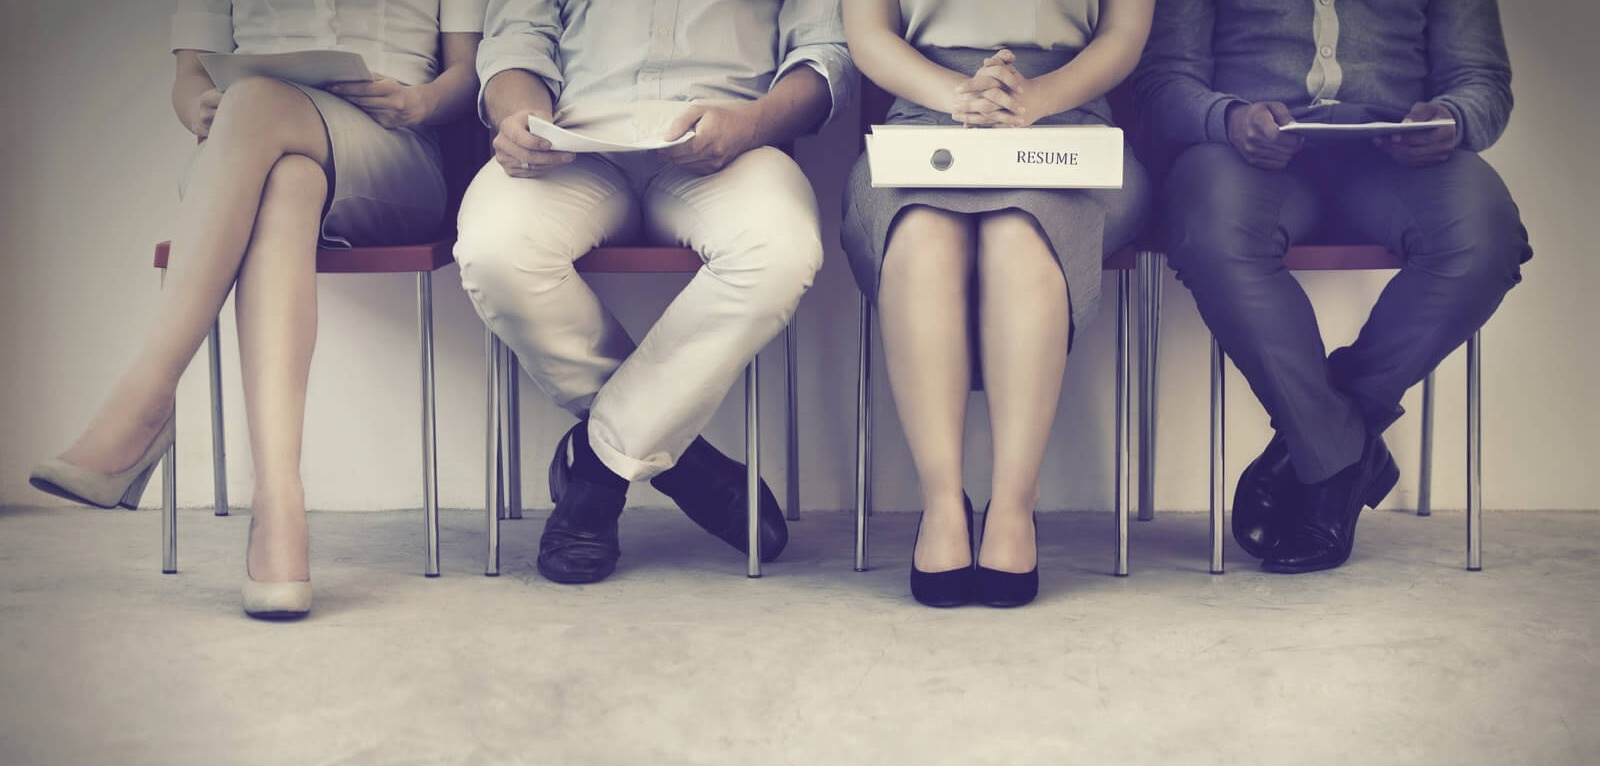 how to apply for new job opportunities